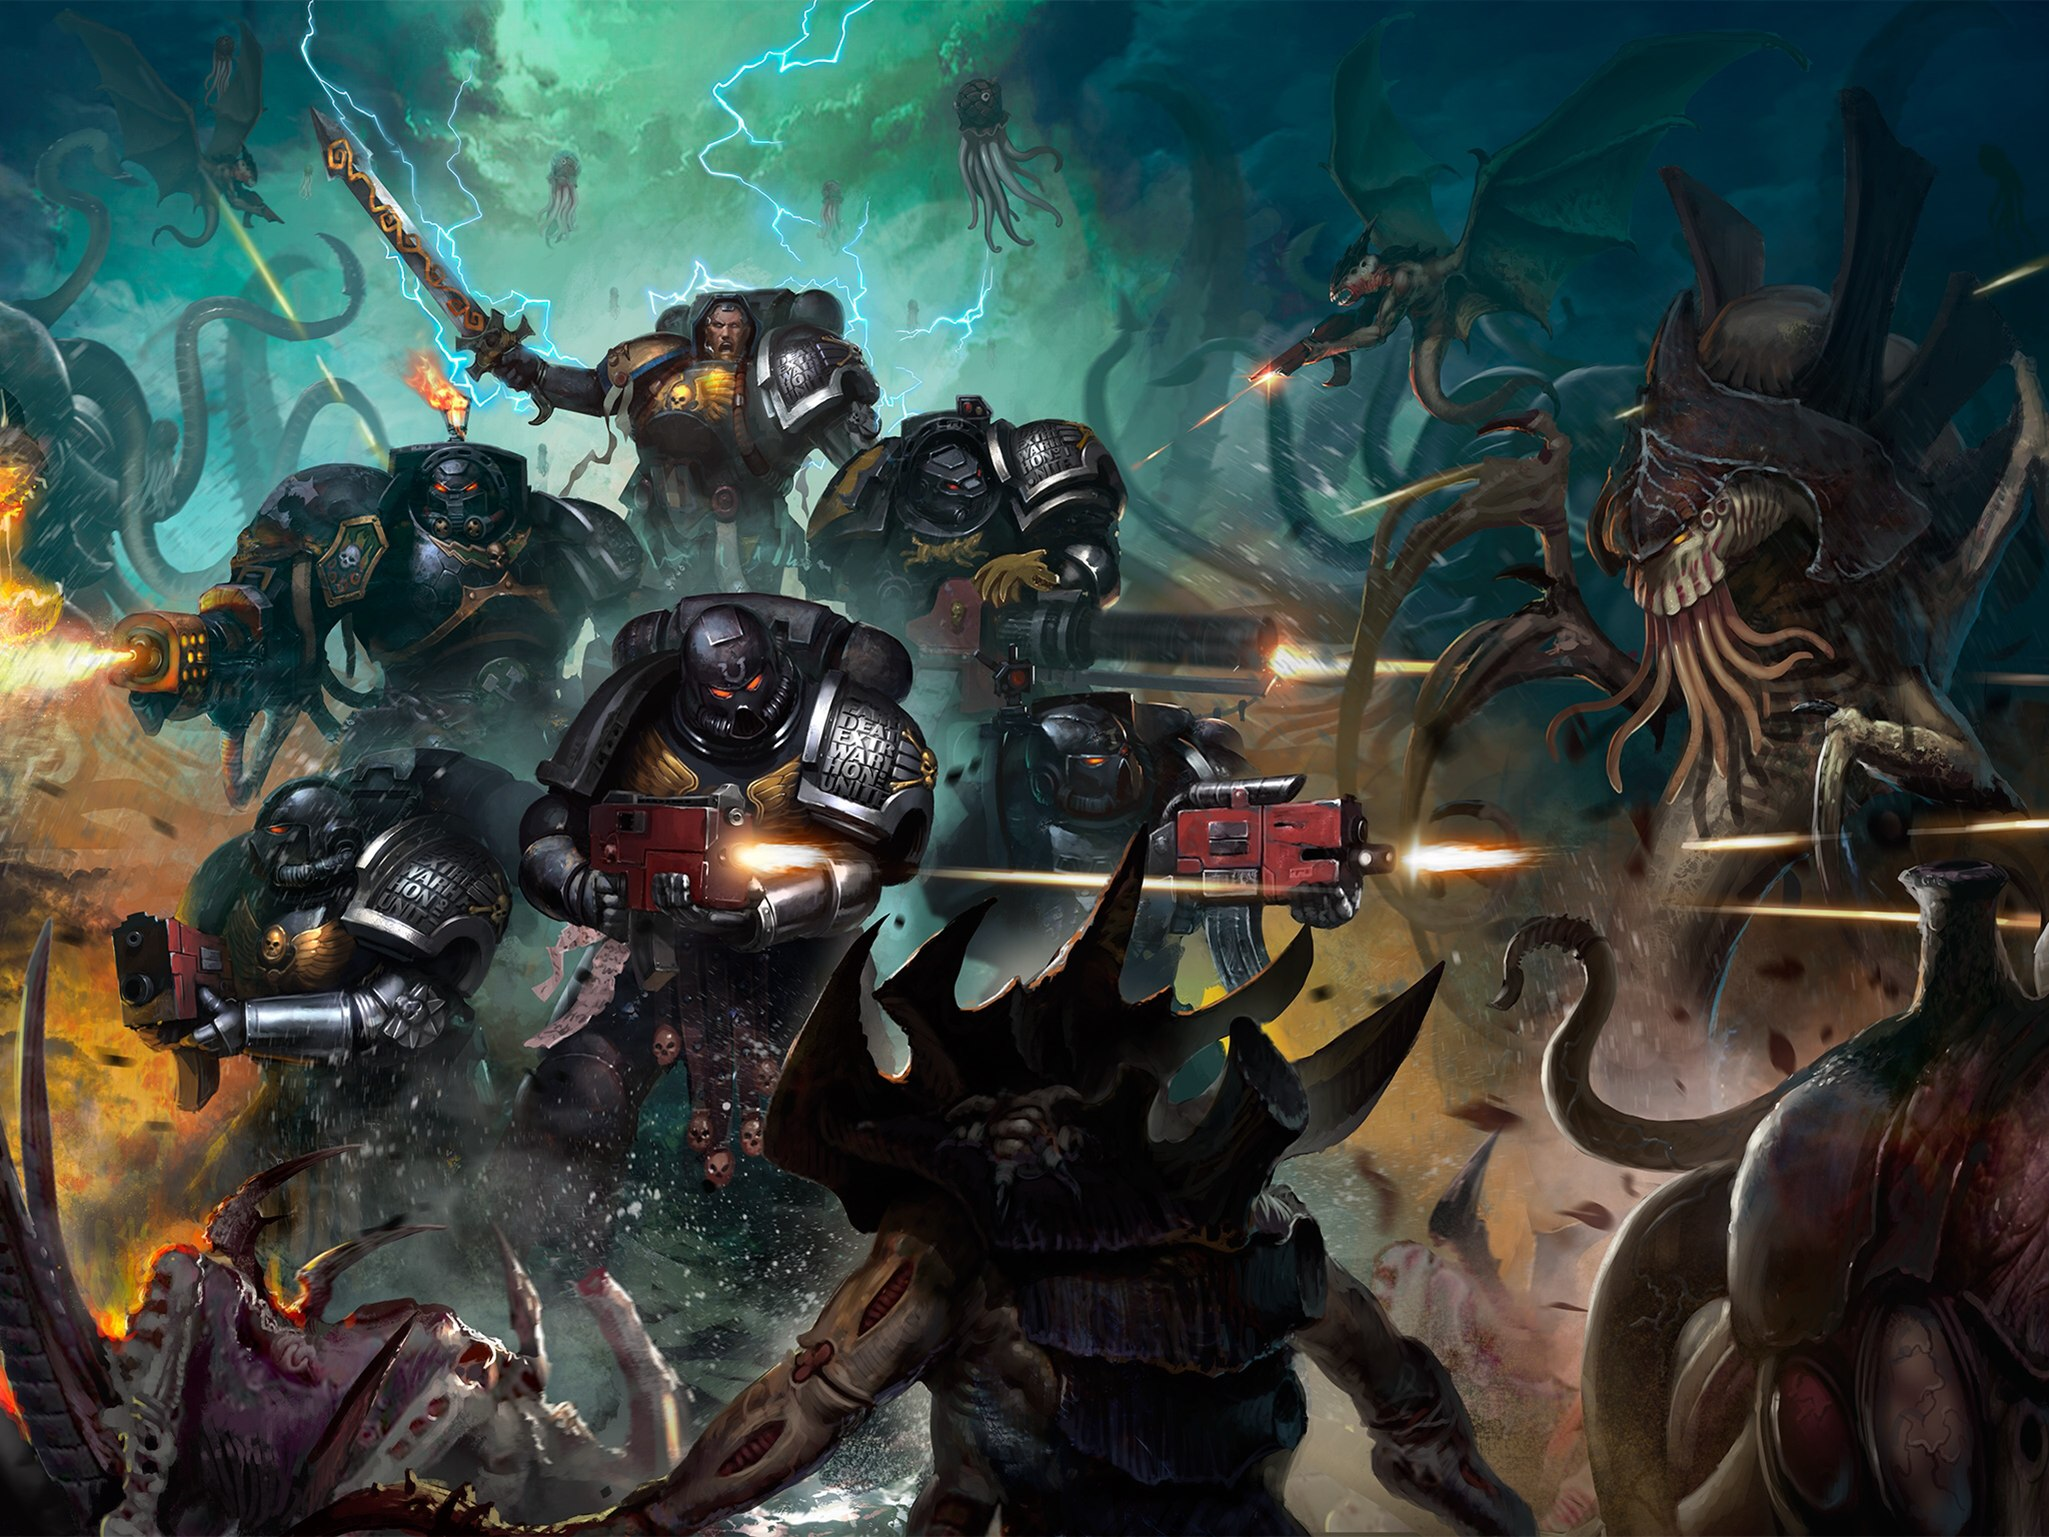 deathwatch_kill_team_vs__tyranids_by_bloodrave1984-dcl09w3.jpg